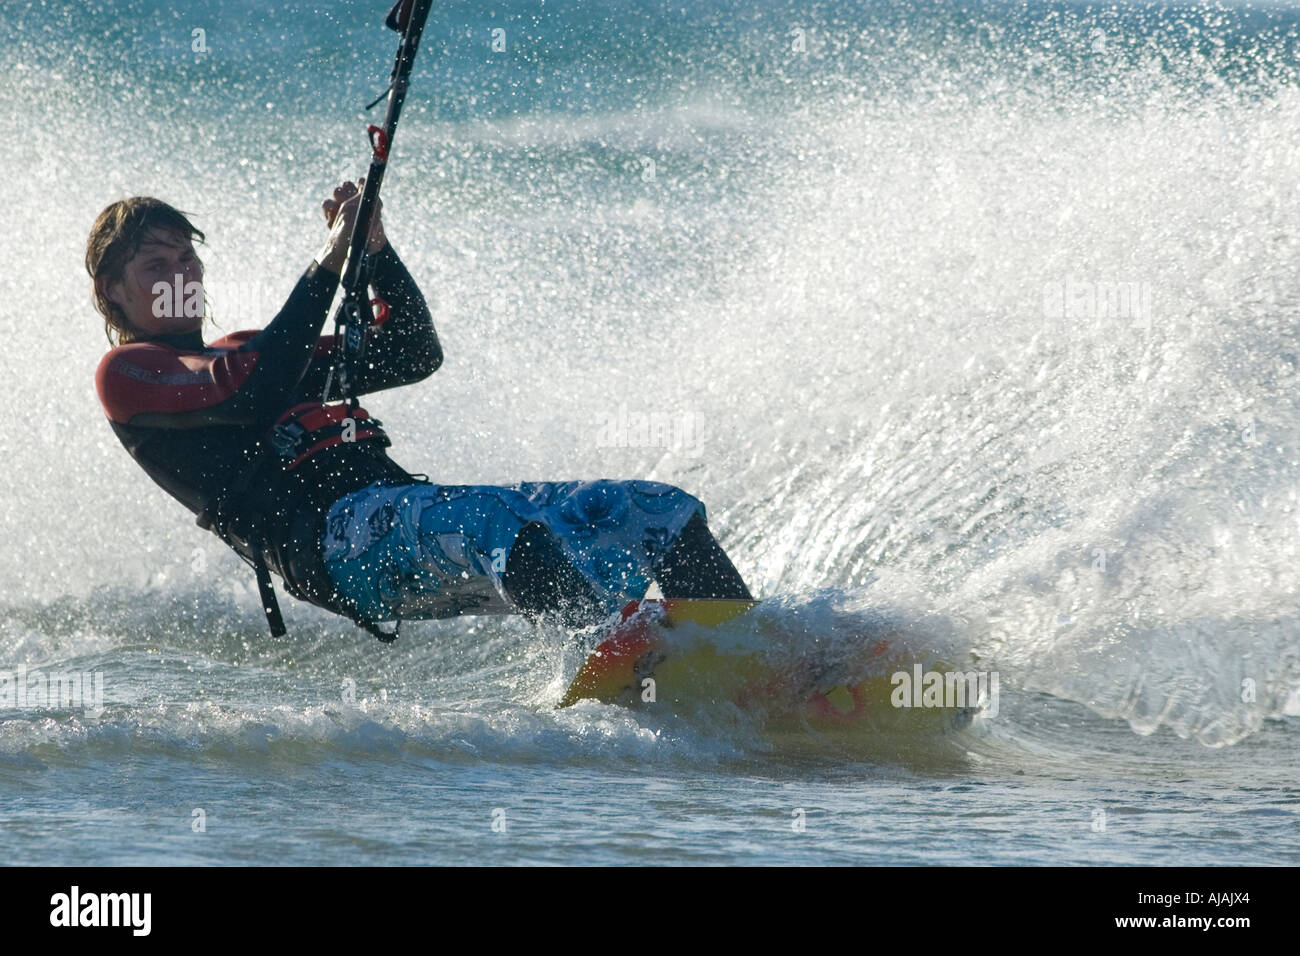 kitesurfer in action - Stock Image